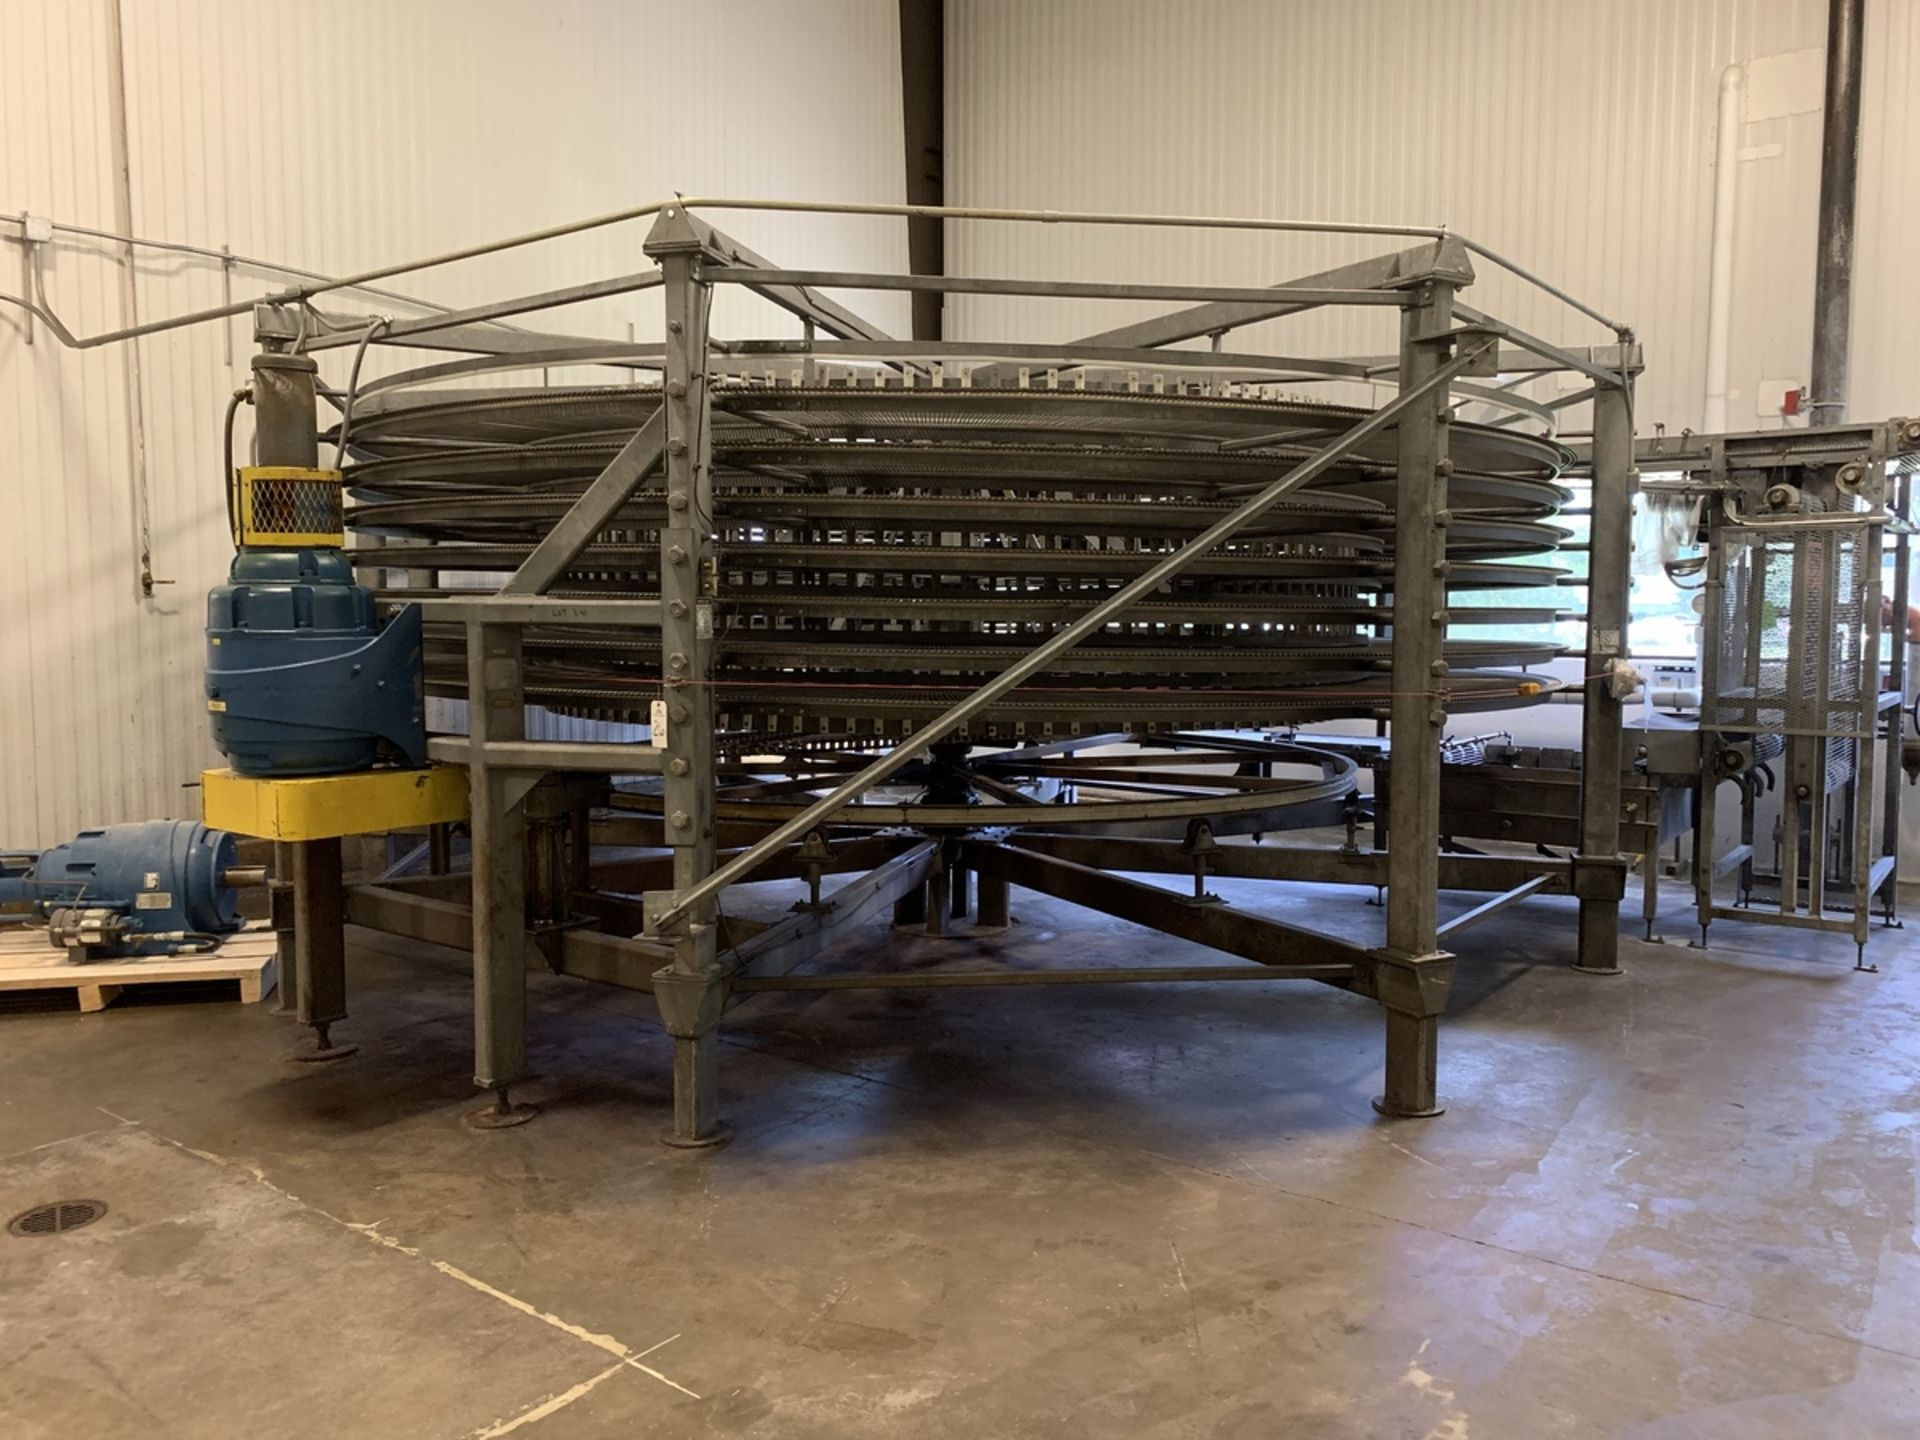 "Lot 26 - Ambient Spiral Cooler, 34"" Belt Width, 3-5/8in Tier Clearance, 7-Tier, 18' OD, 9' O 